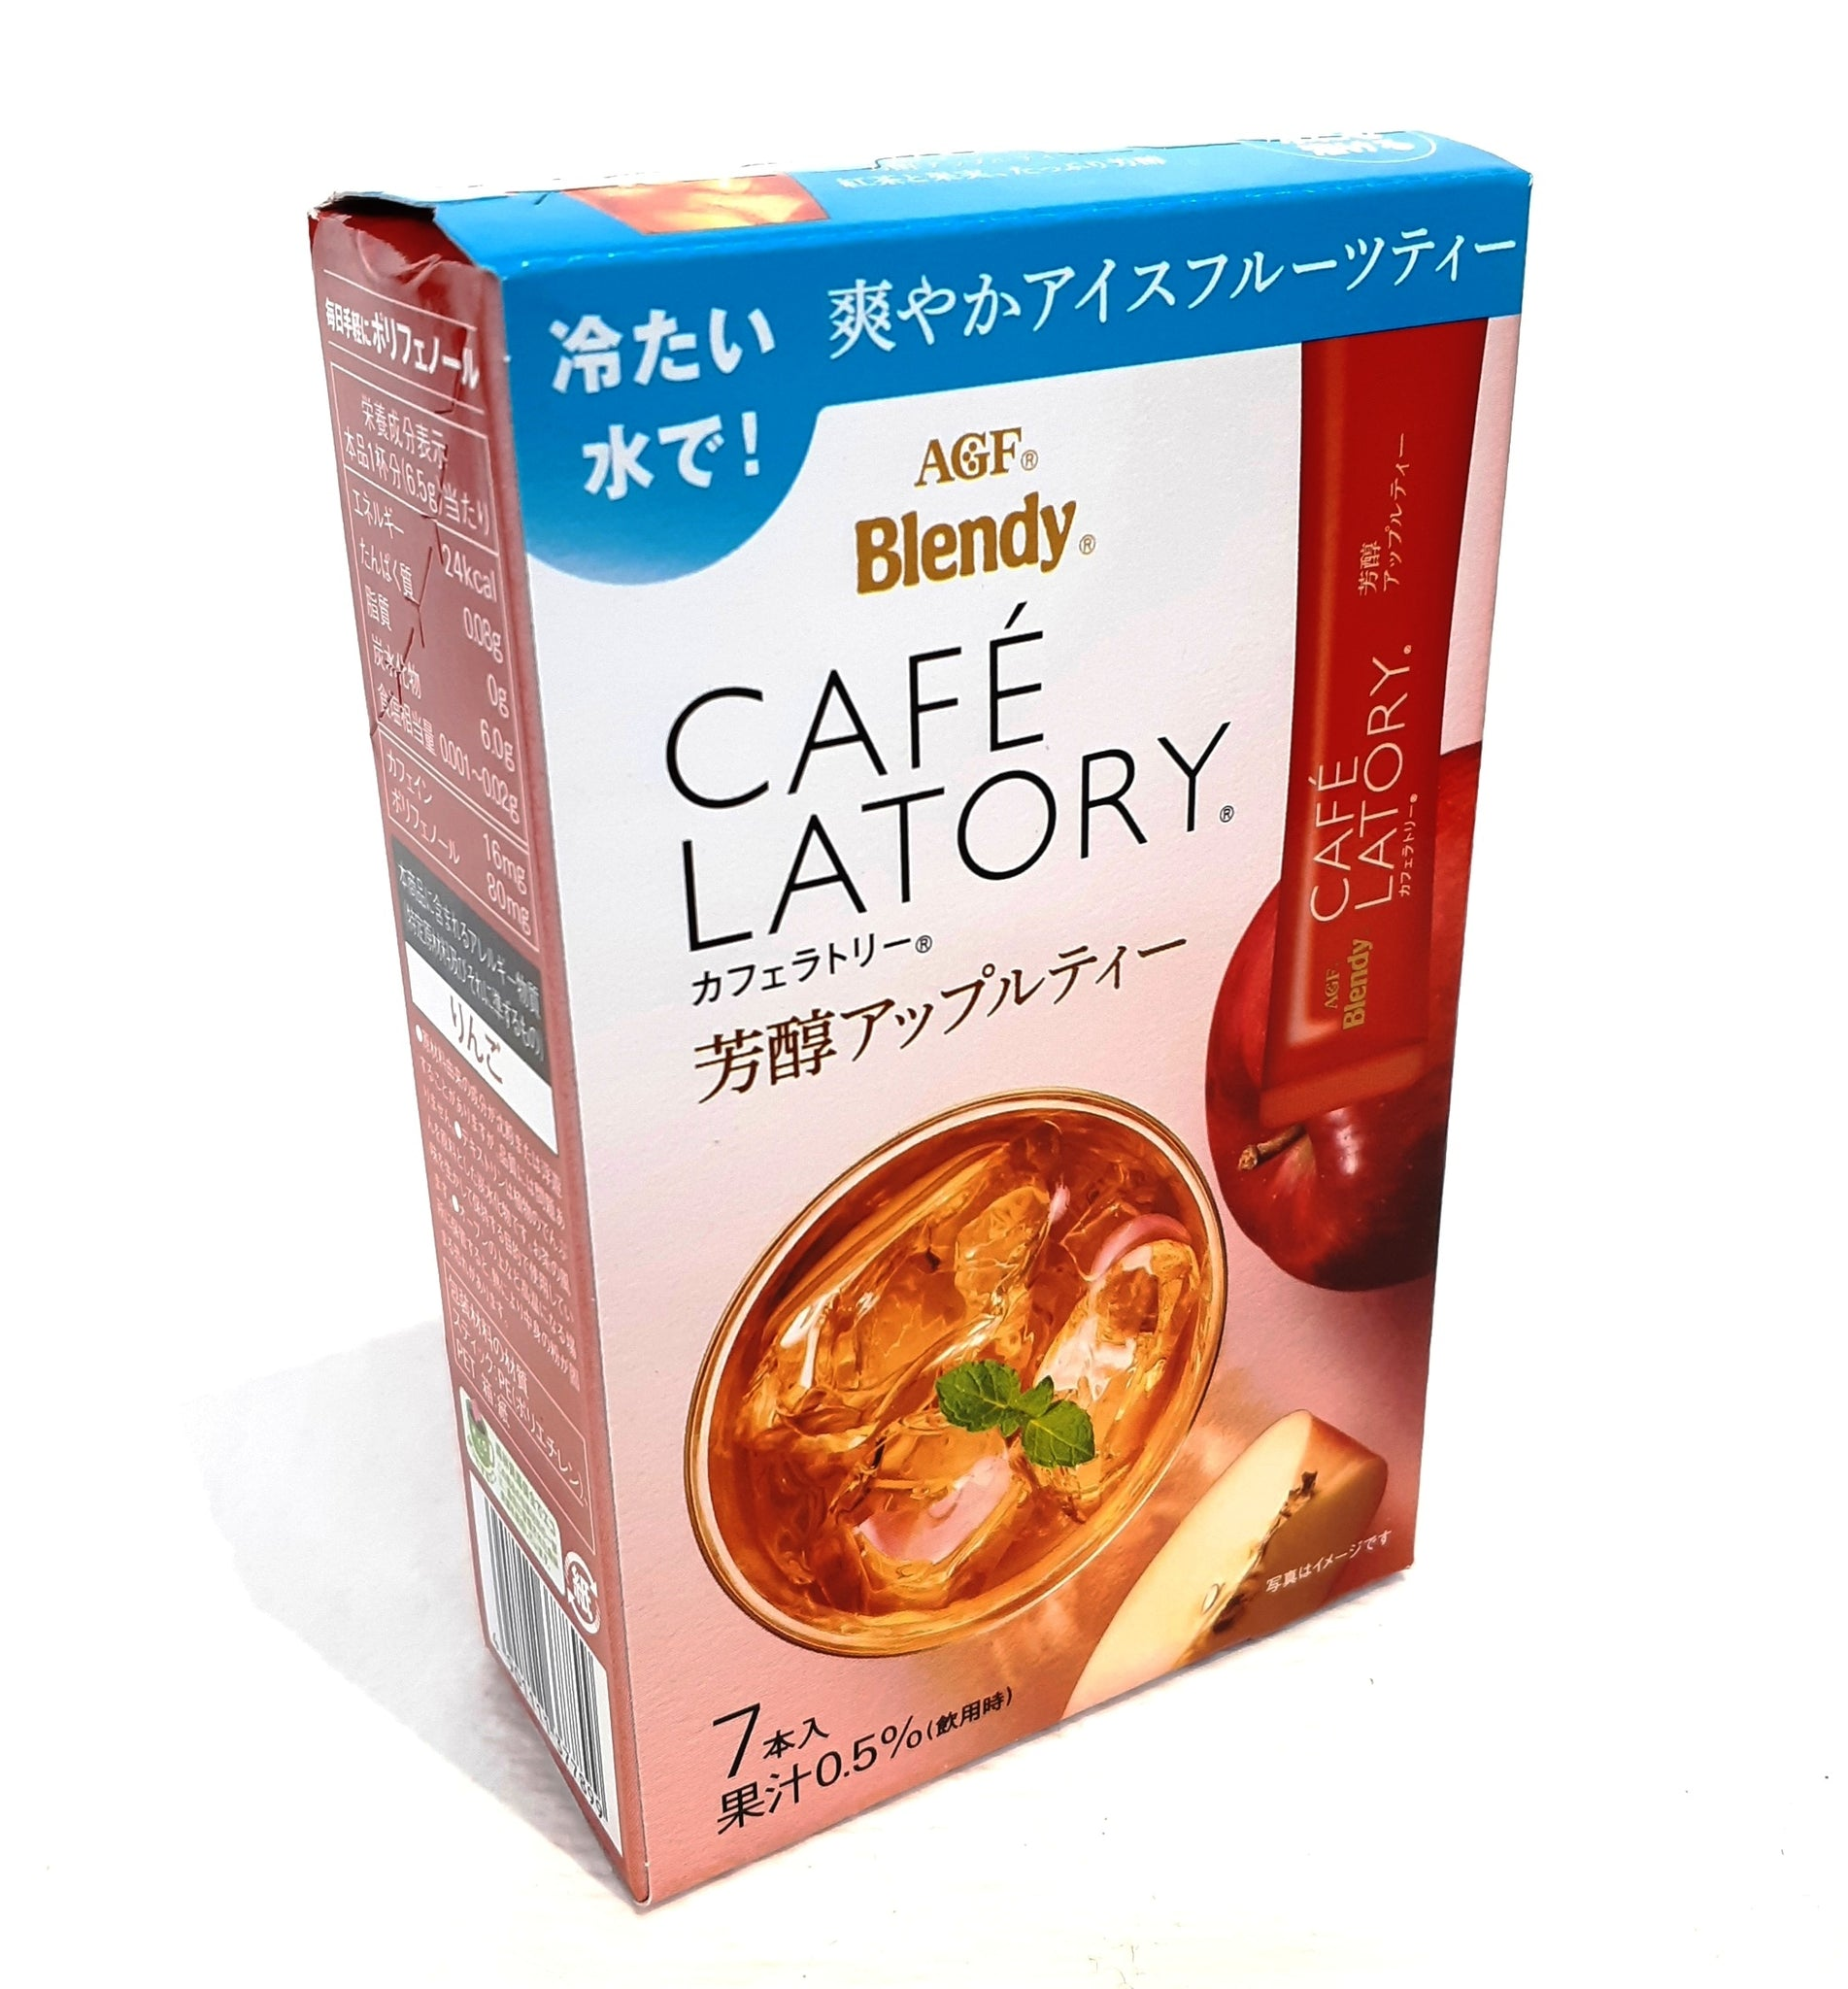 AGF Blendy cafe latory instant apple tea